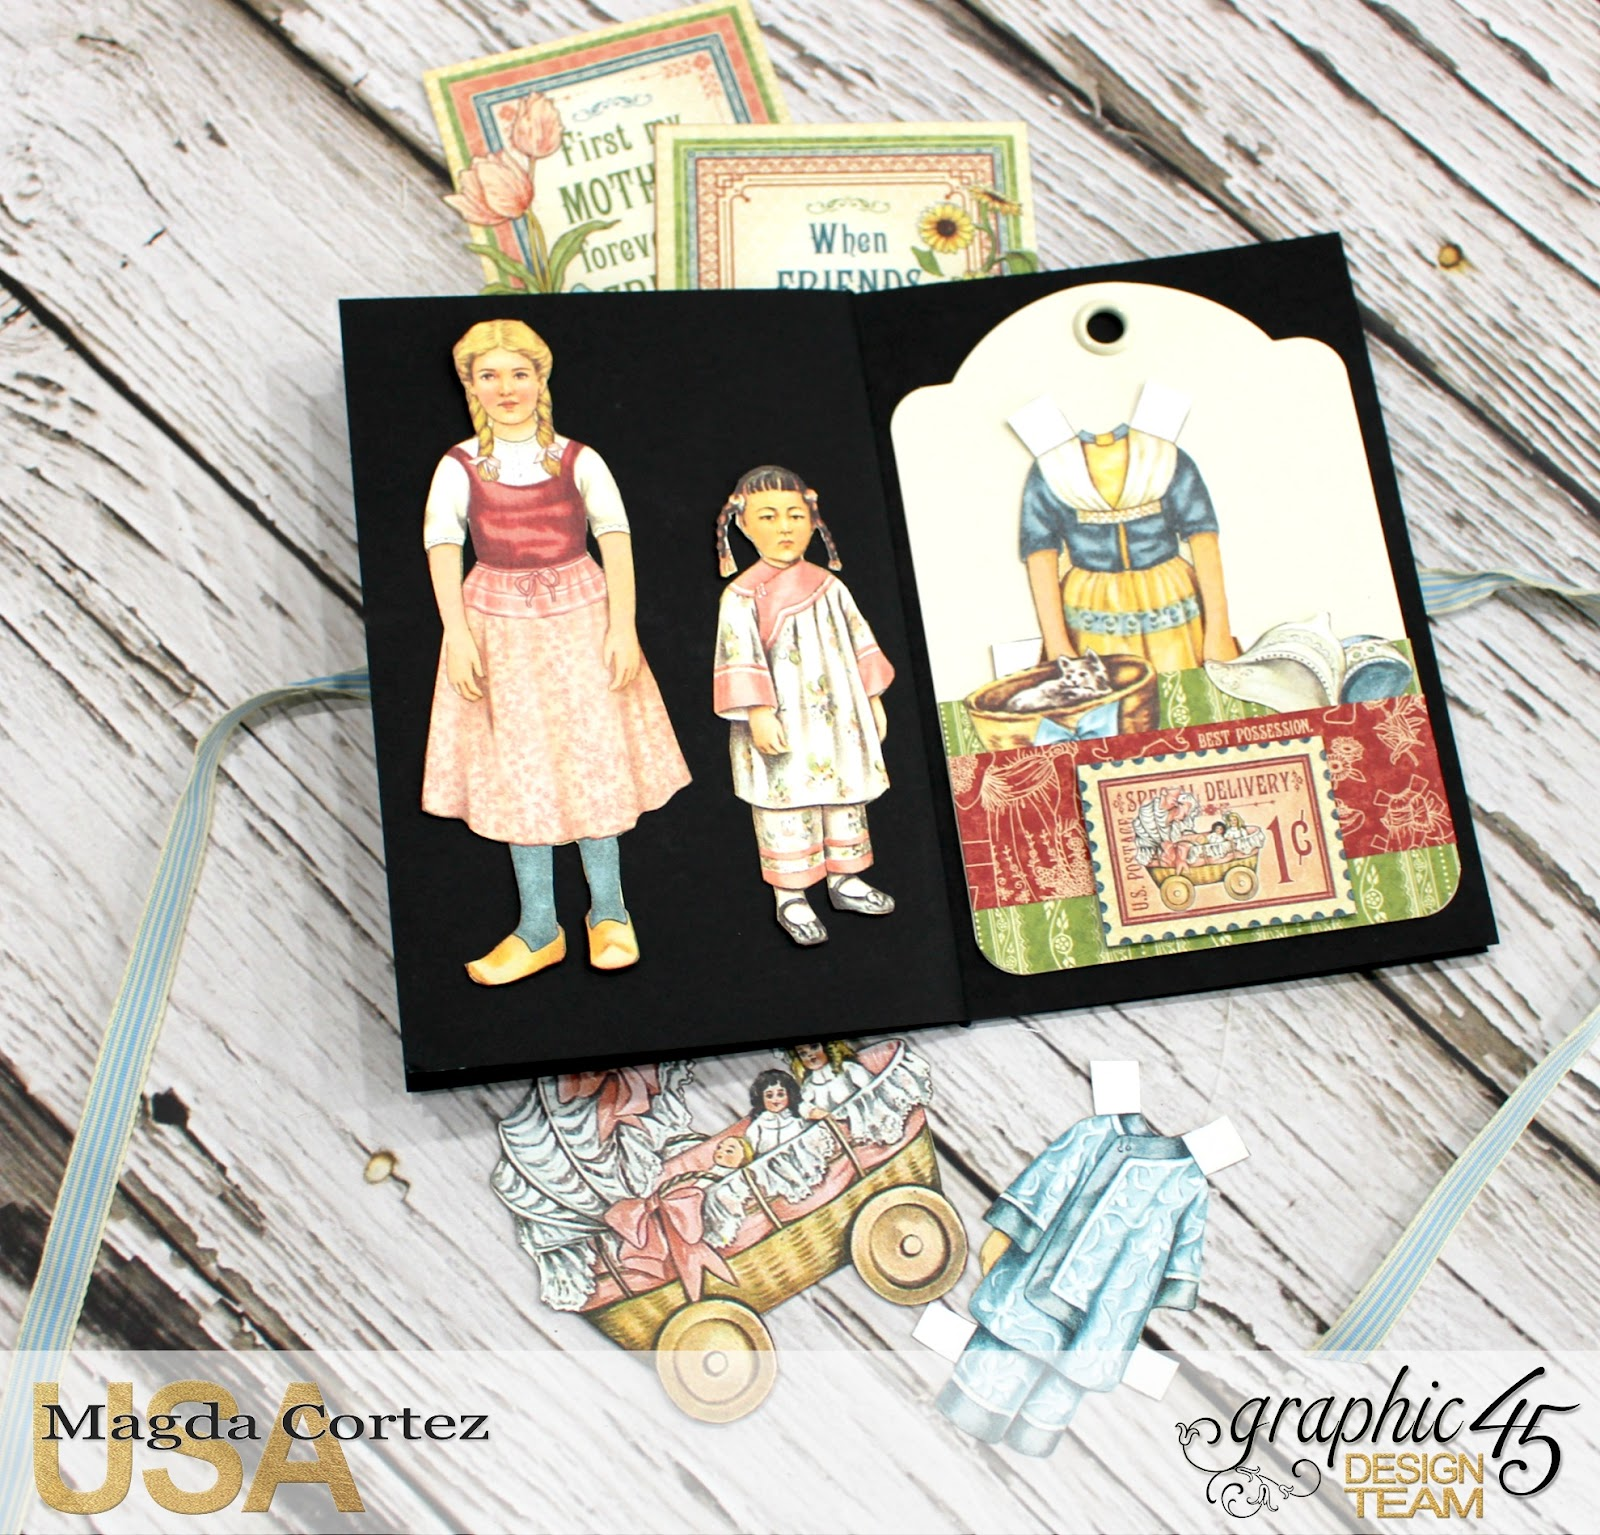 Penny's Color My World - Penny's Family Paper Doll By Magda Cortez, Product of Graphic 45, Photo 08 of 11 with Tutorial.jpg